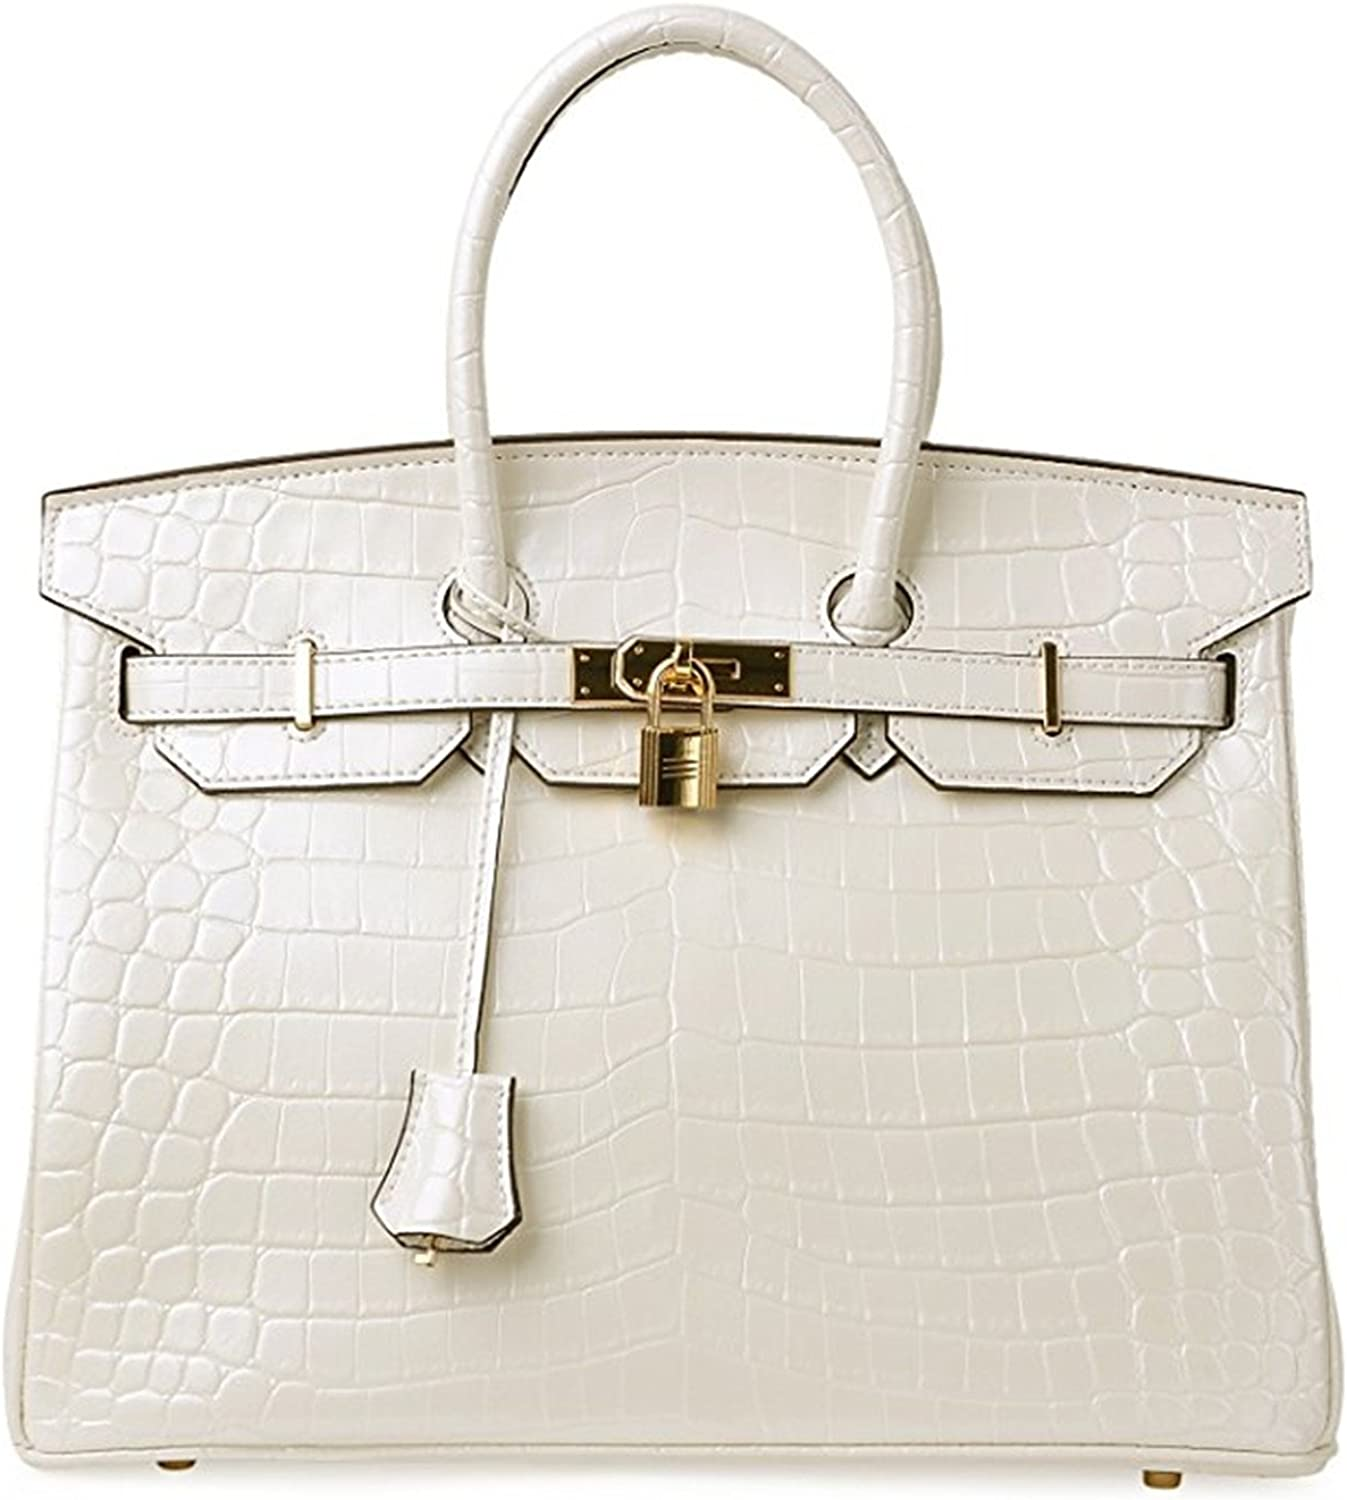 Padlock Bag Women Crocodile Leather Top Handle Handbags Pearl White 30cm